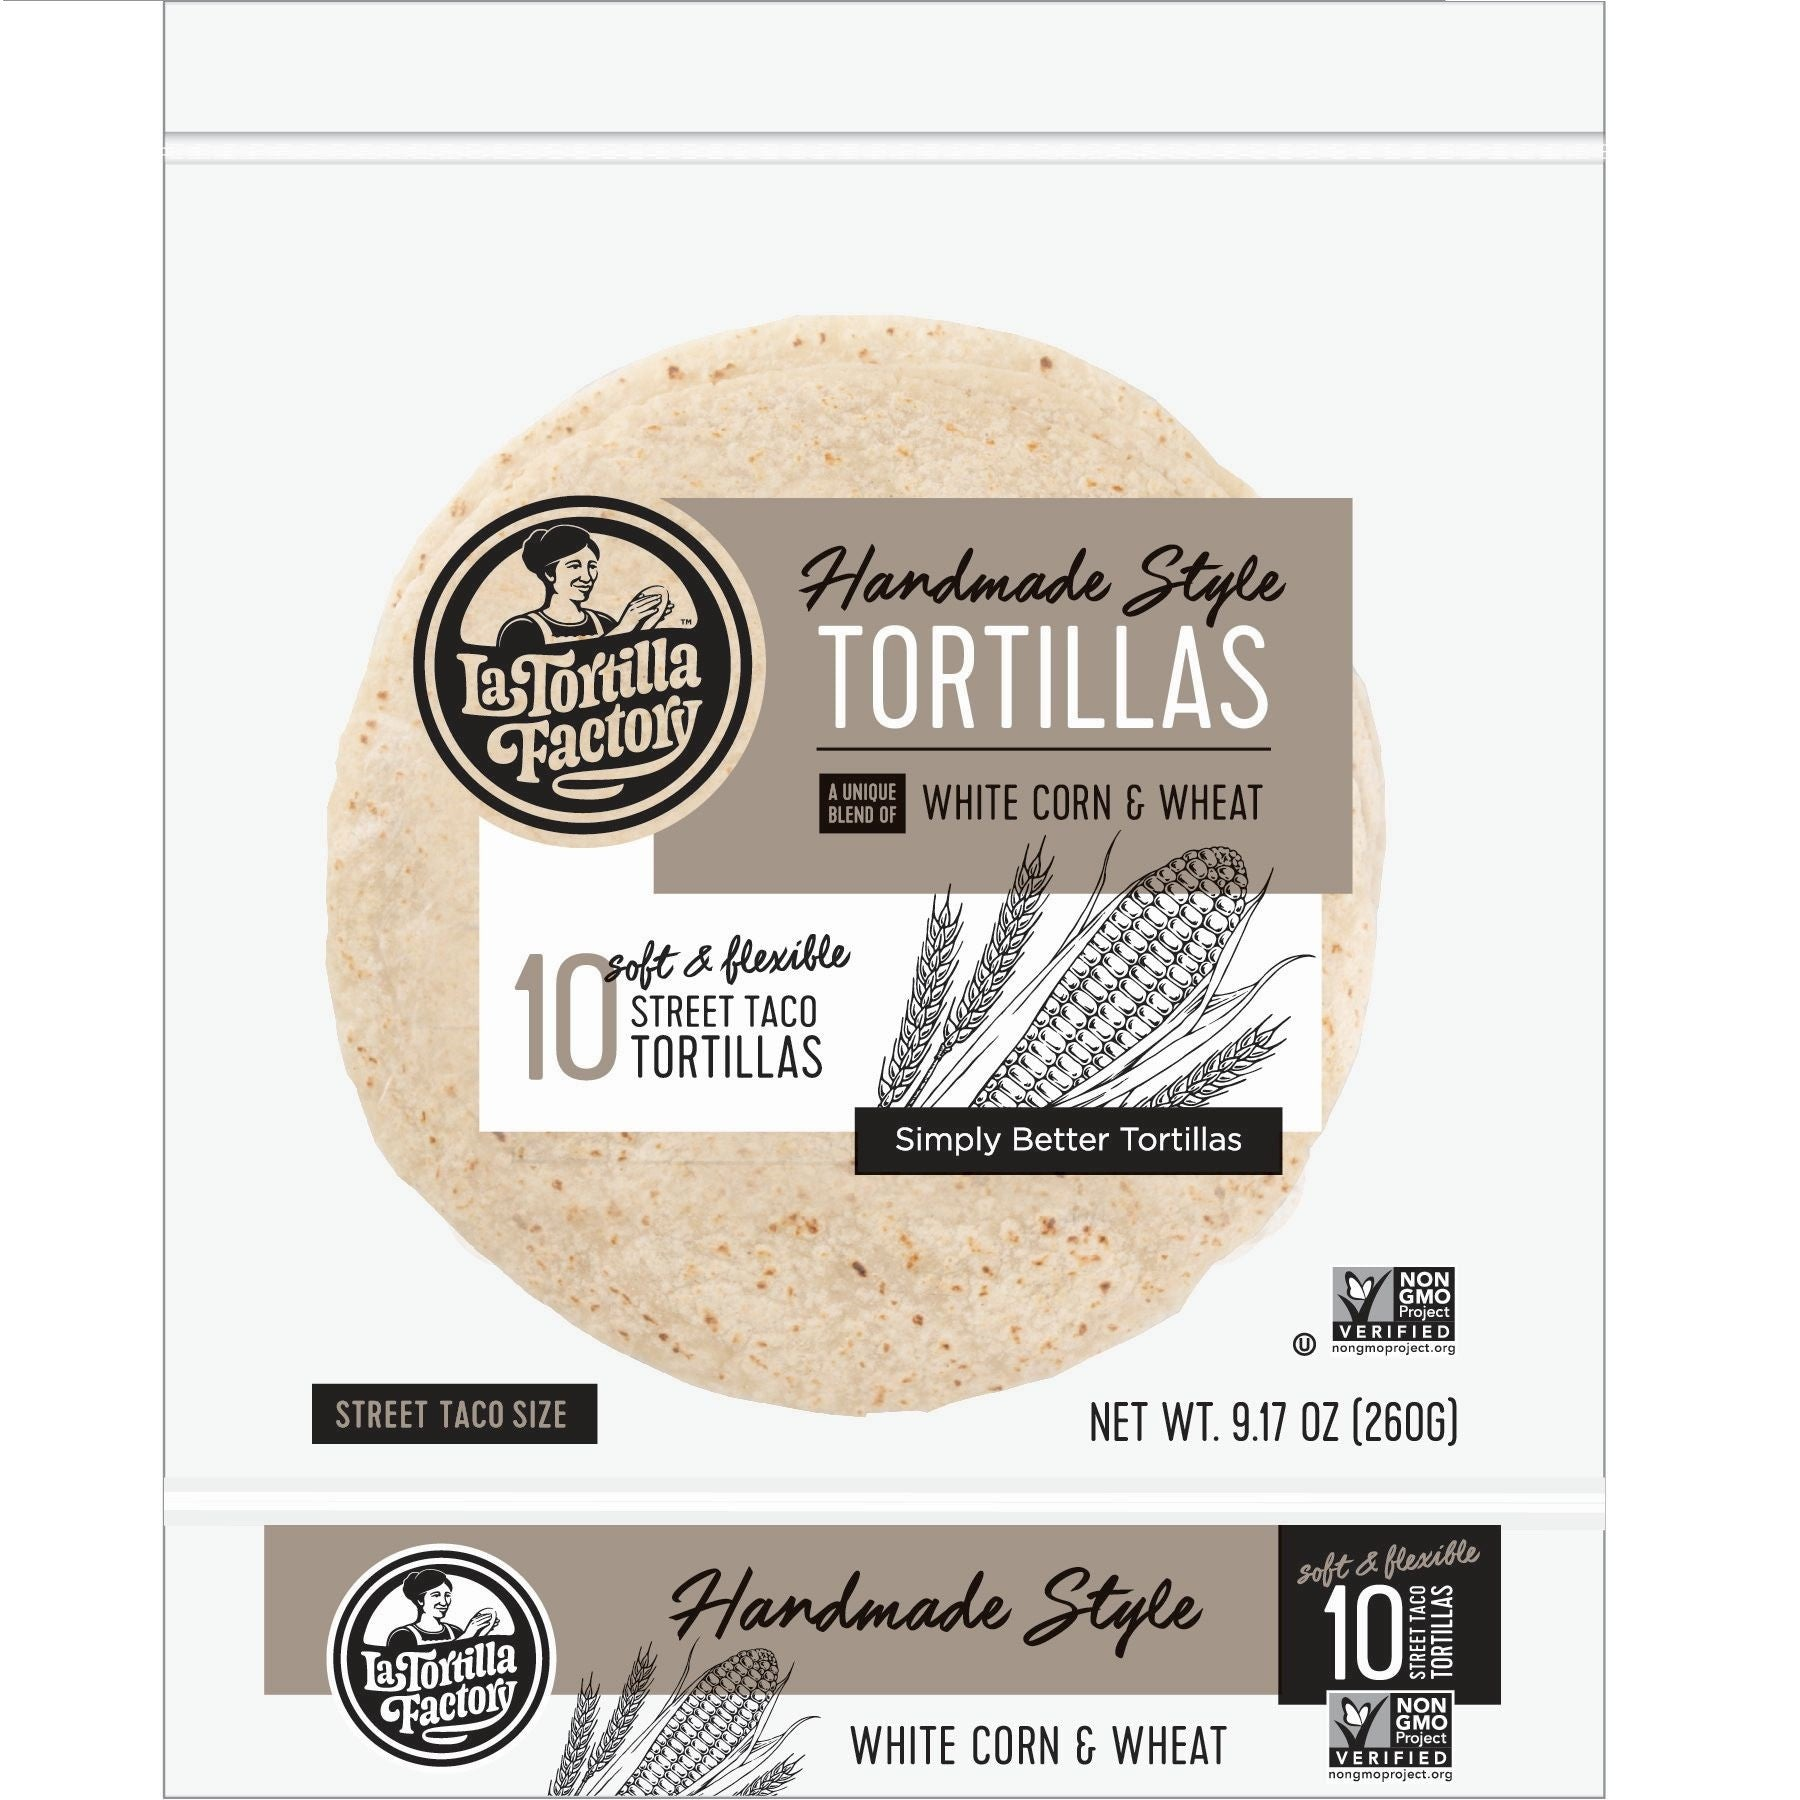 La Tortilla Factory Non-GMO Hand Made Style Tortillas, White Corn & Wheat, Street Taco Size 10 Ea (Pack of 12)